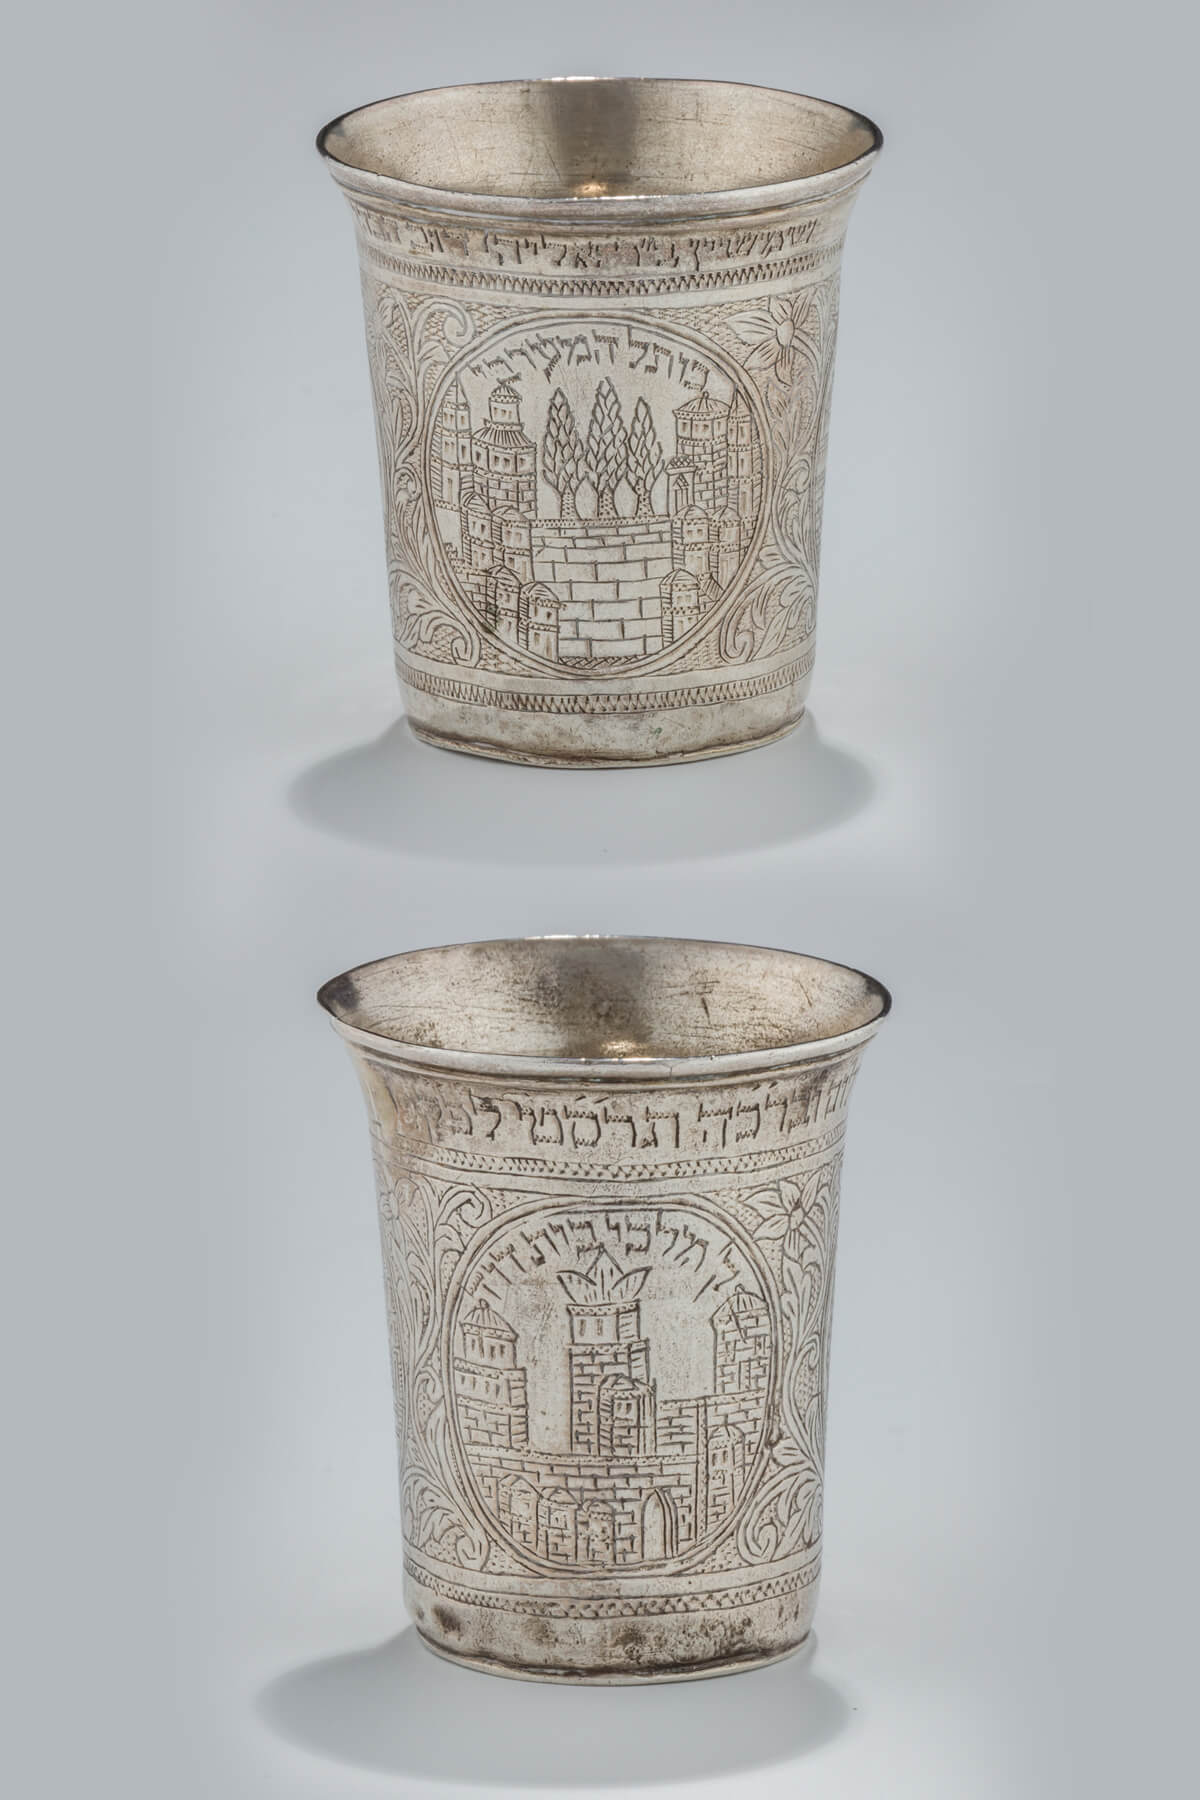 034. A Pair of Silver Kiddush Beakers